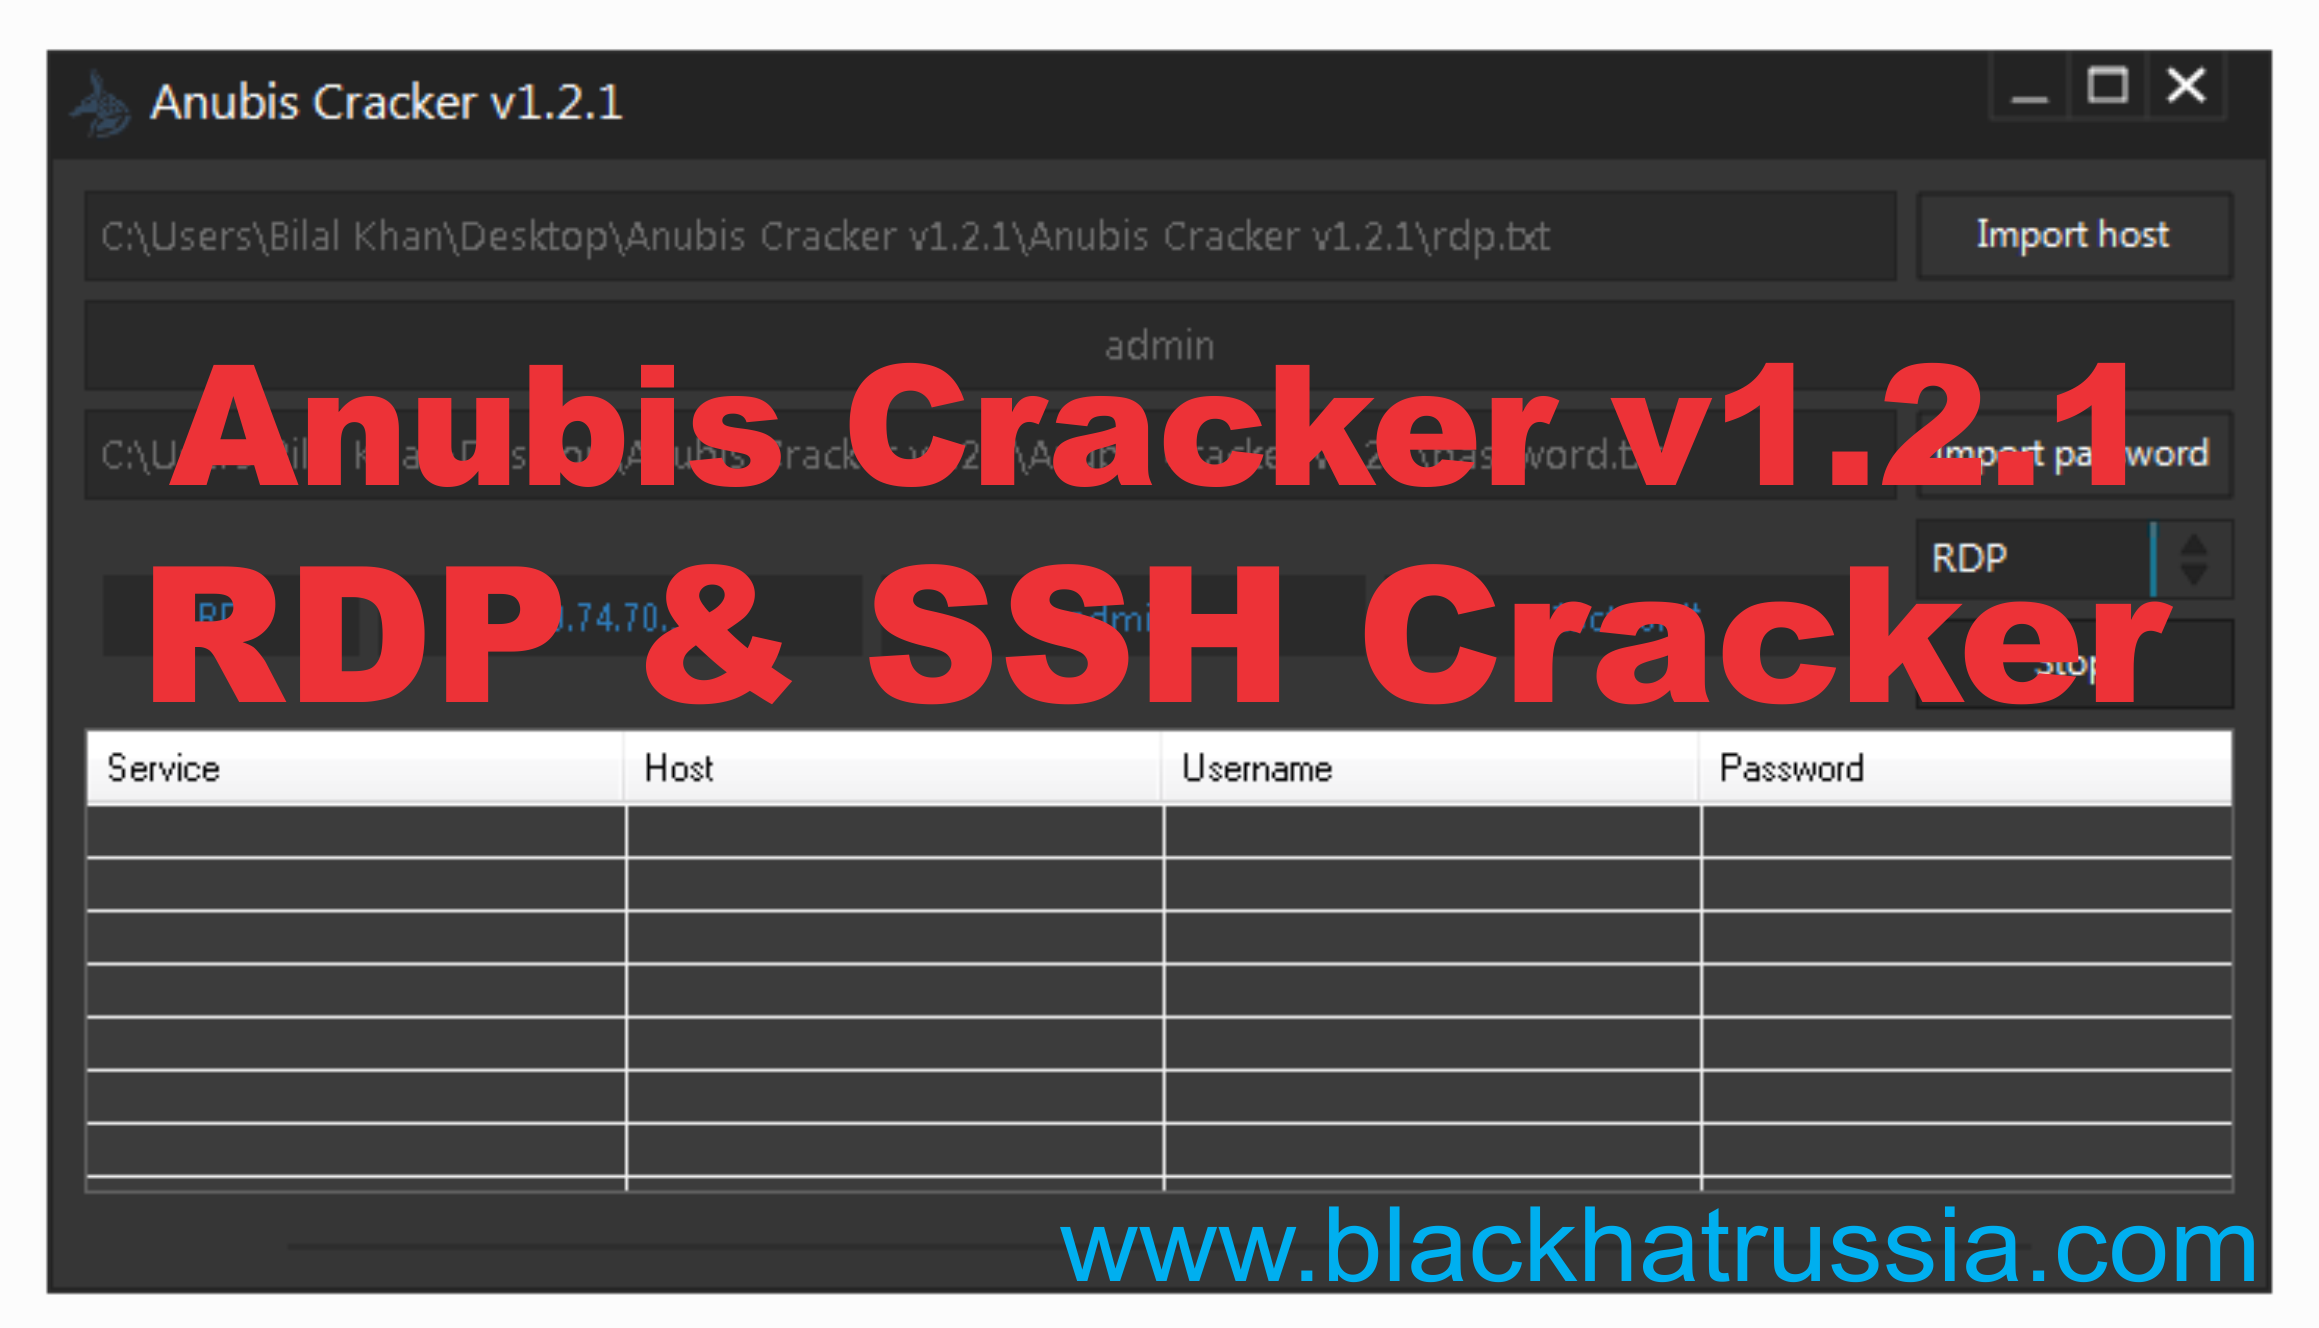 ANUBIS CRACKER V.1.2.1 BRUTE FORCE SSHRDP